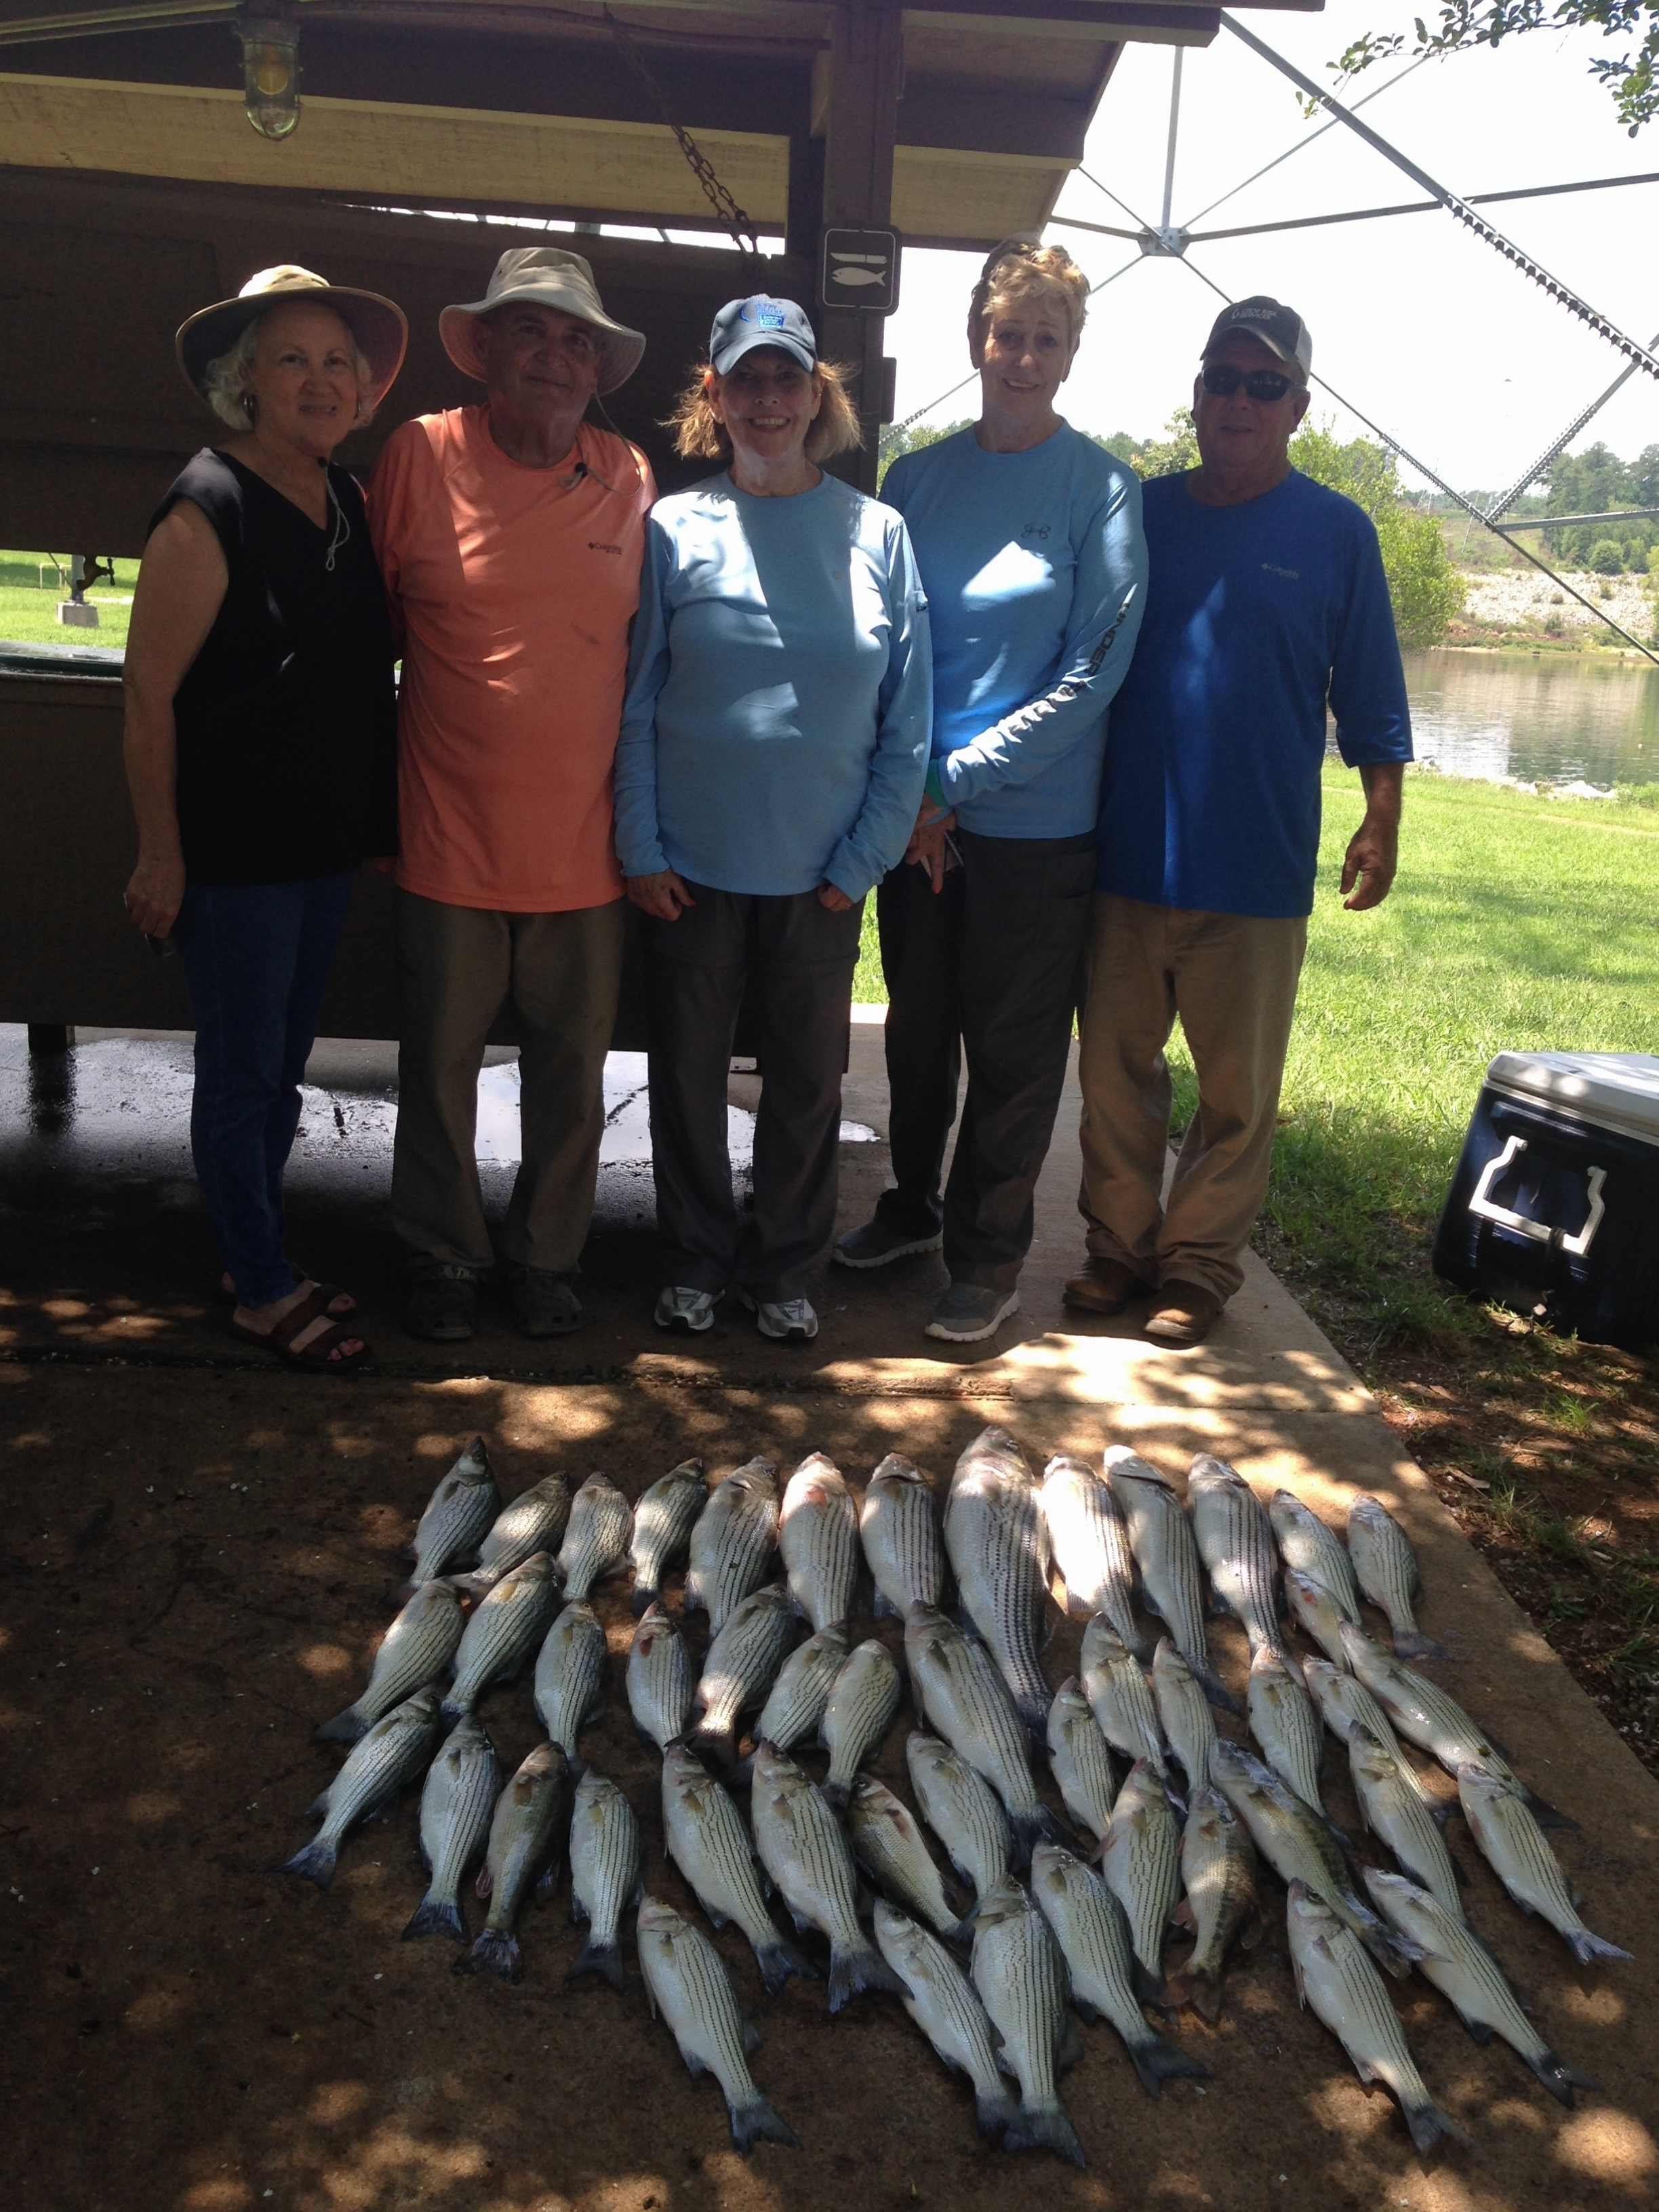 July 10, 2017 My wife Lucy, Her brother Ricky Cleghorn, his wife Juanita, Cindy and Phil Gilley all from Sycamore, Ga. with their catch of the day.